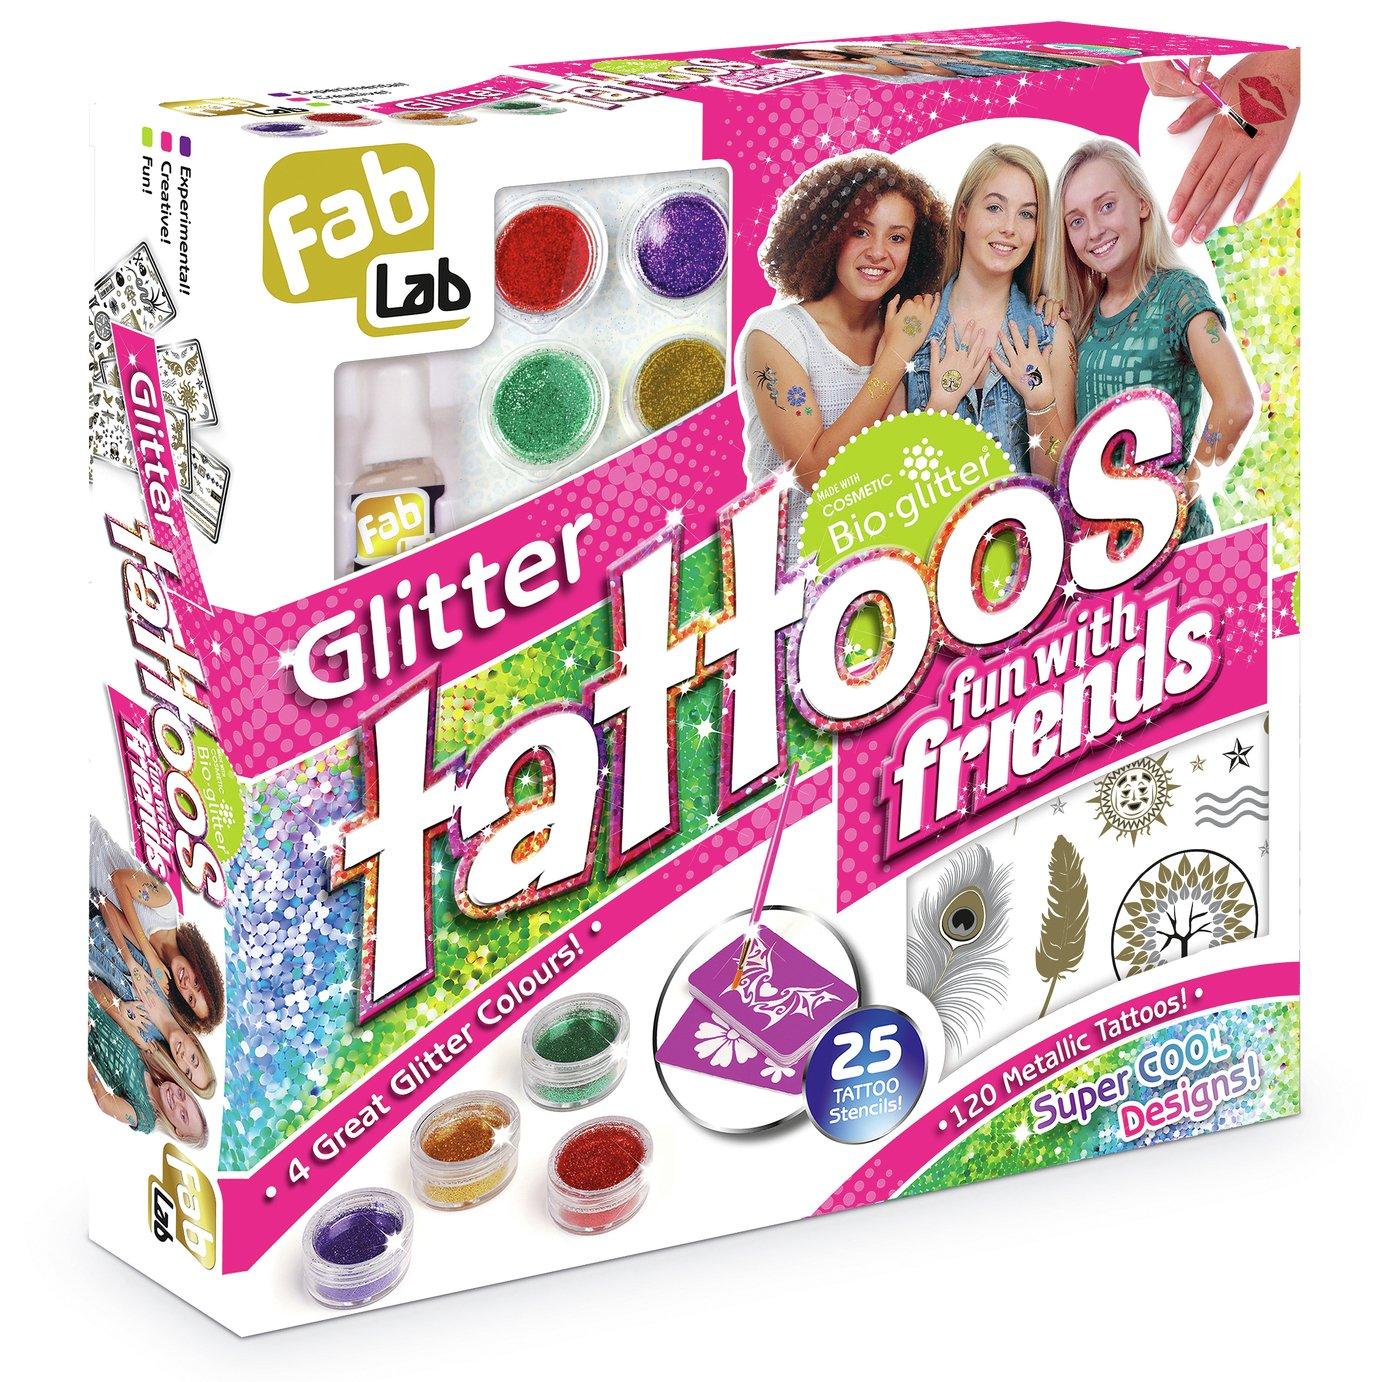 Buy Fablab Glitter Tattoos Fun With Friends Kit Jewellery And Fashion